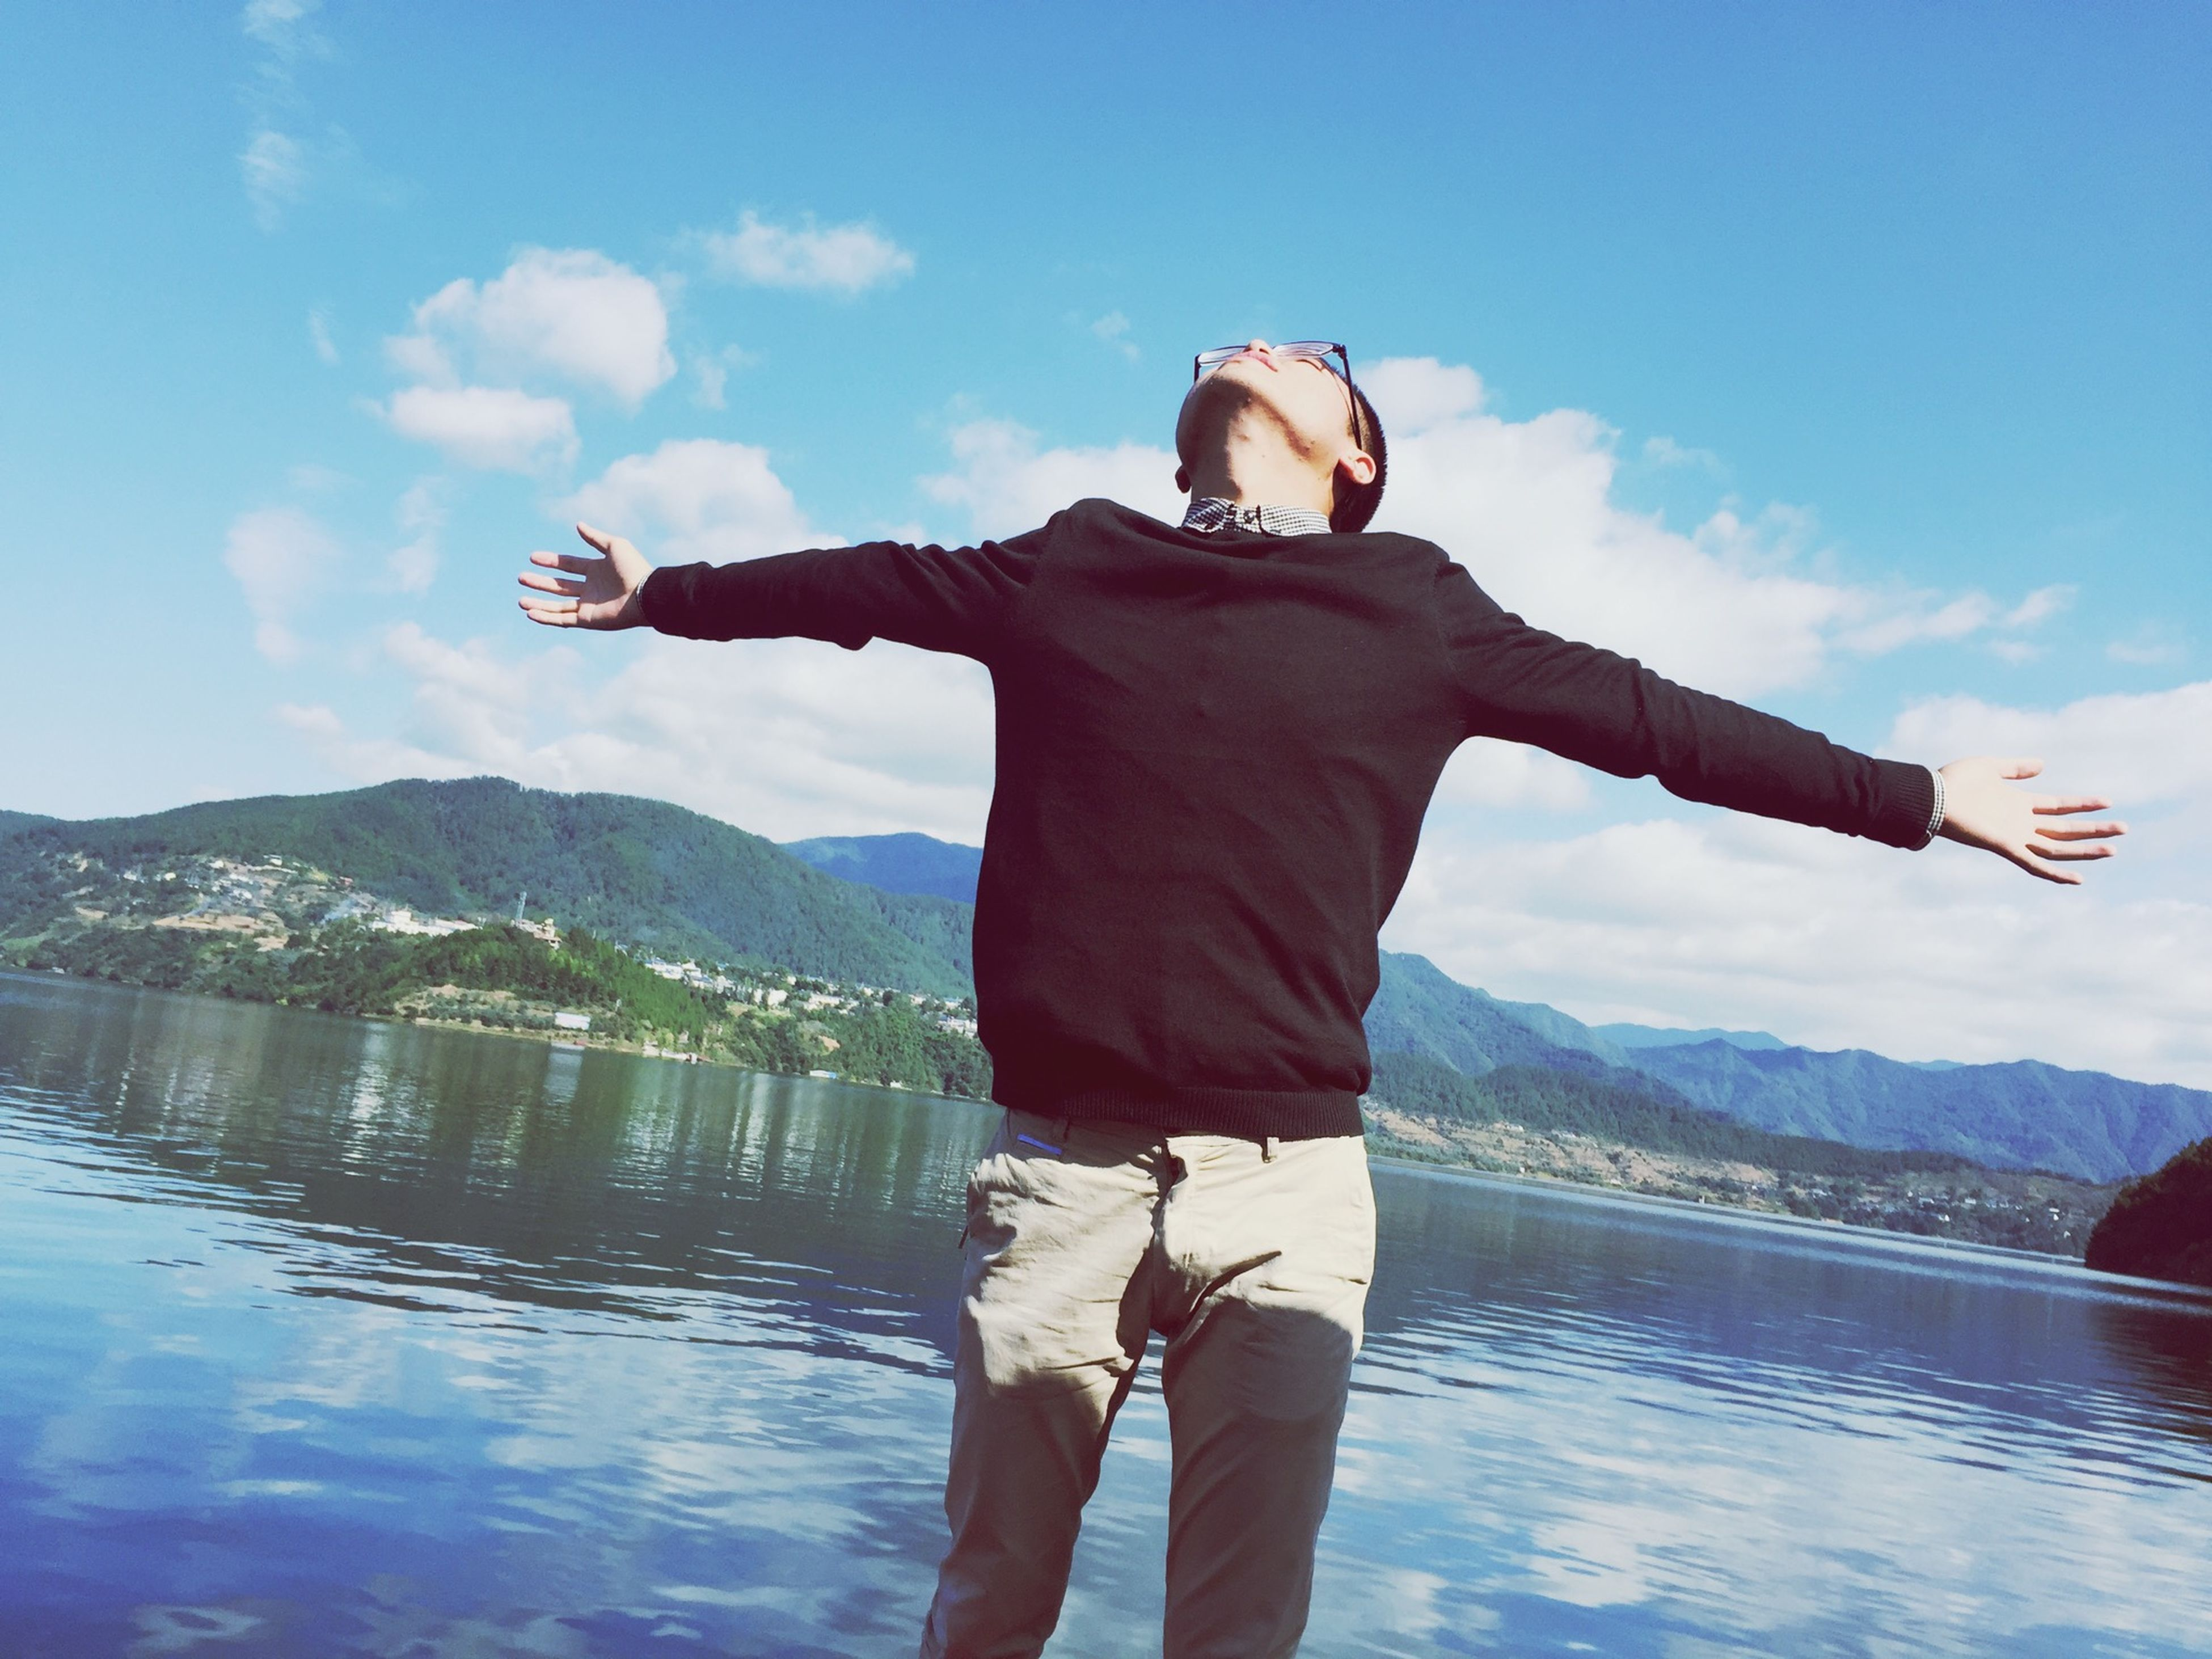 lifestyles, full length, water, casual clothing, standing, leisure activity, sky, young adult, lake, three quarter length, rear view, cloud - sky, mountain, arms outstretched, person, young men, mountain range, tranquil scene